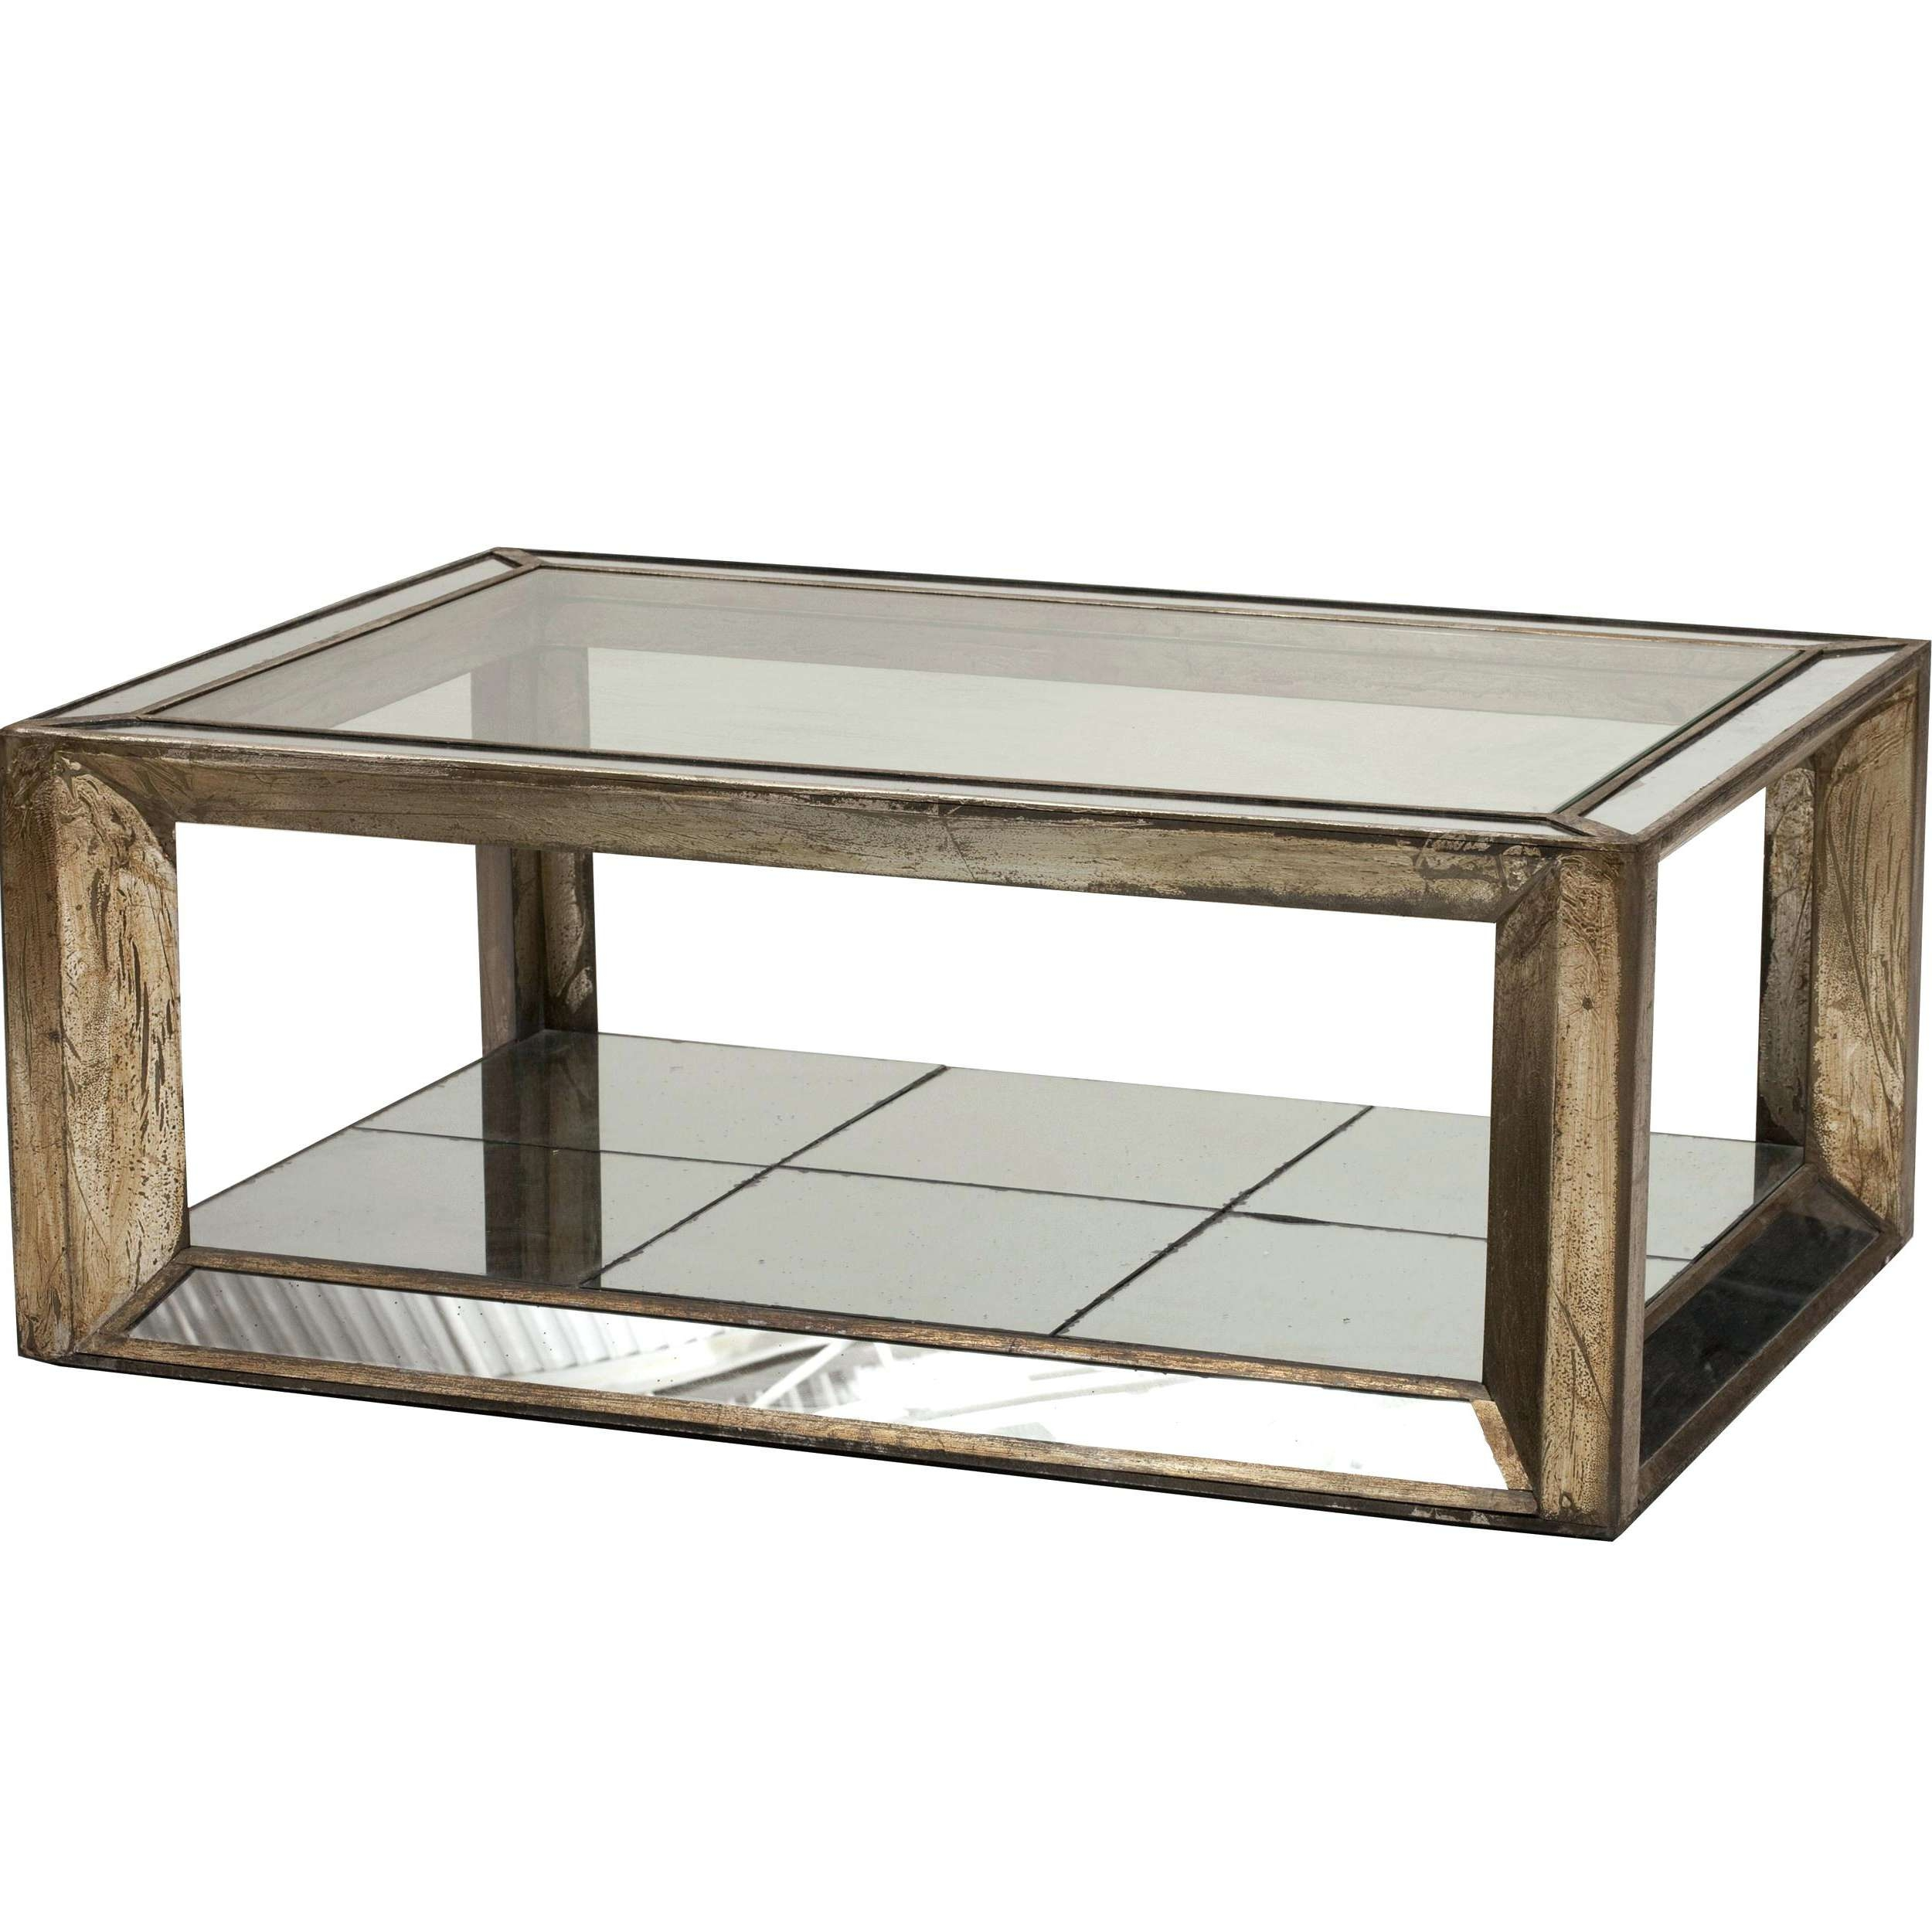 Newest Round Mirrored Coffee Tables Throughout Coffee Tables : Antique Mirrored Coffee Tables Awesome Round Table (View 17 of 20)